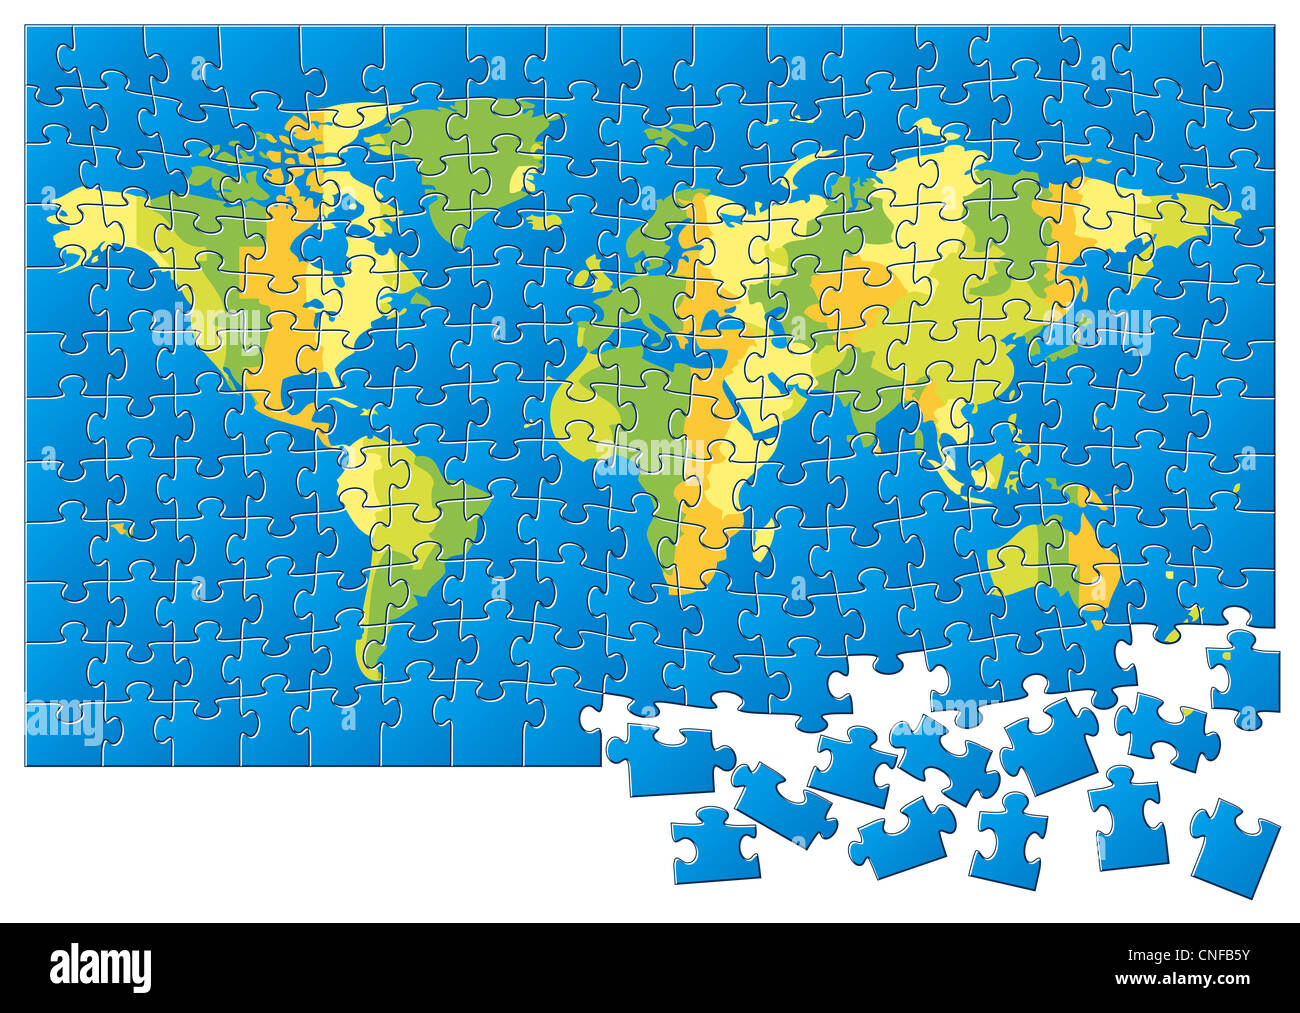 Jigsaw Puzzle World Map Stock Photos & Jigsaw Puzzle World Map